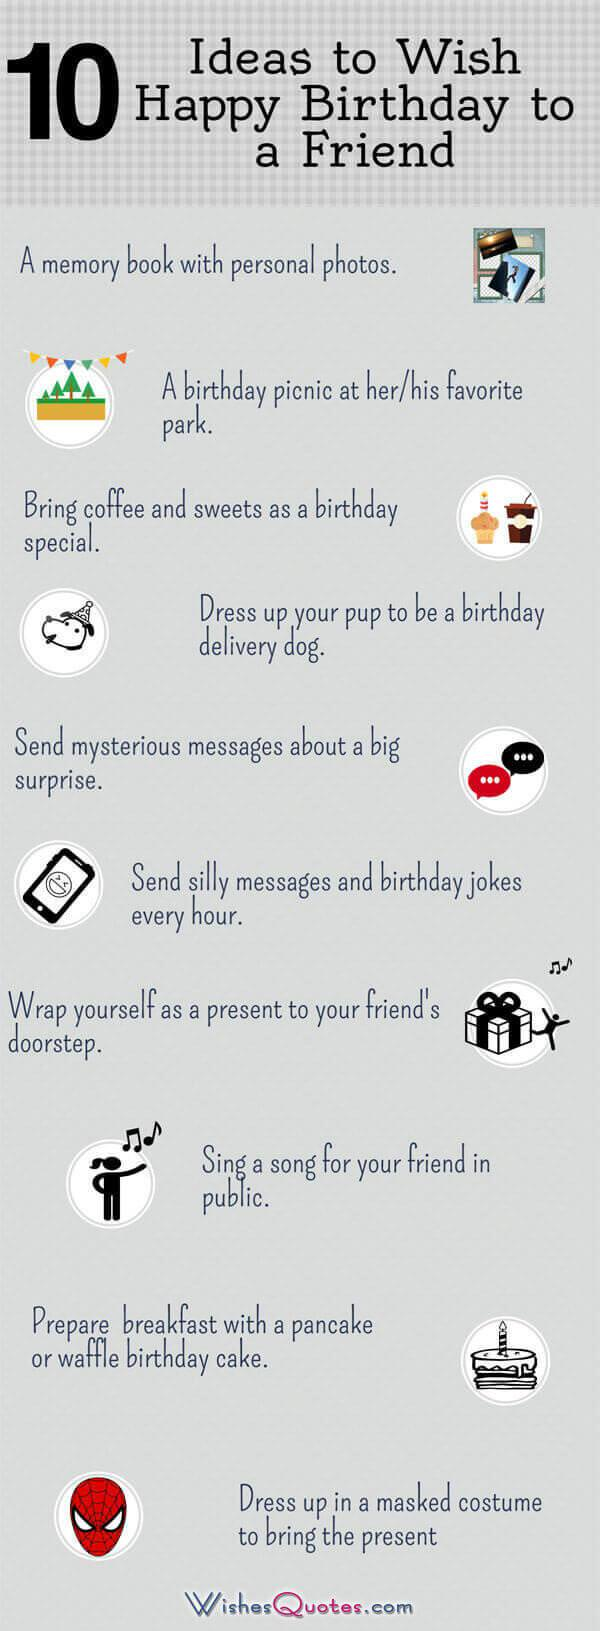 Infographic - 10 Ideas to Wish Happy Birthday to a Friend